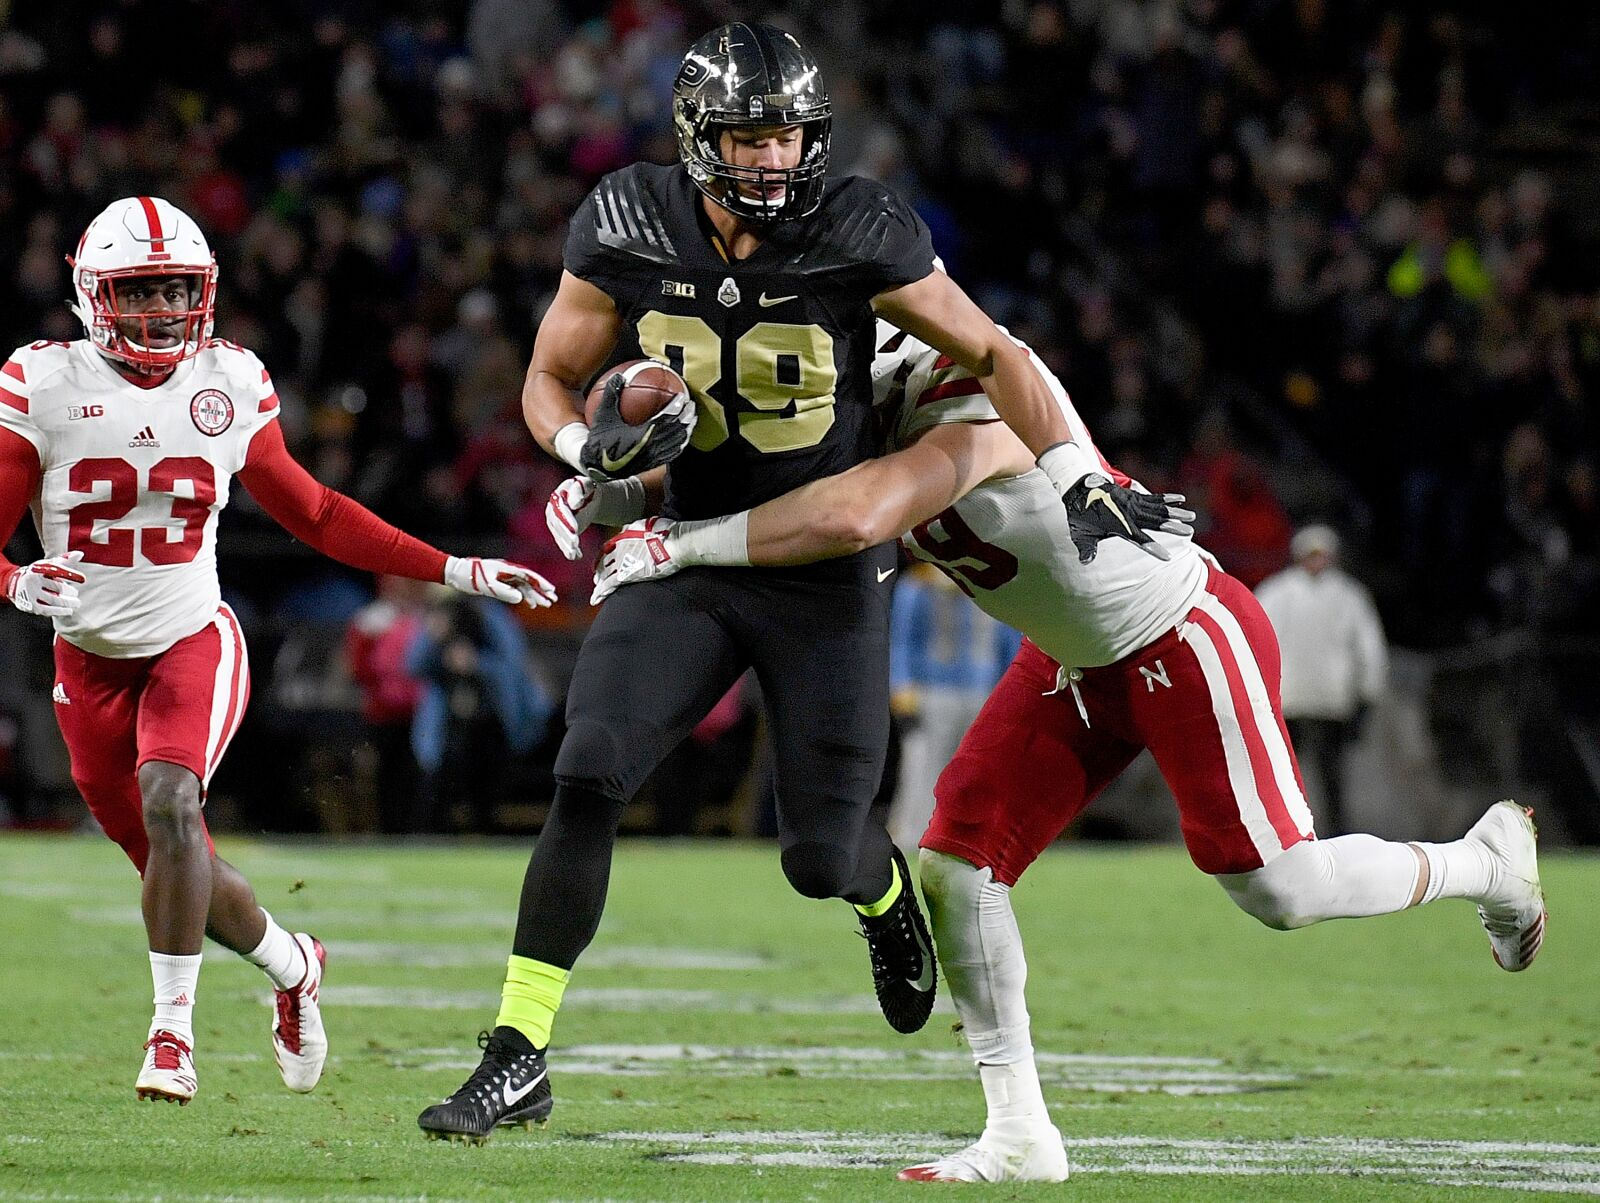 5 Senior Bowl standouts who should be on Steelers radar